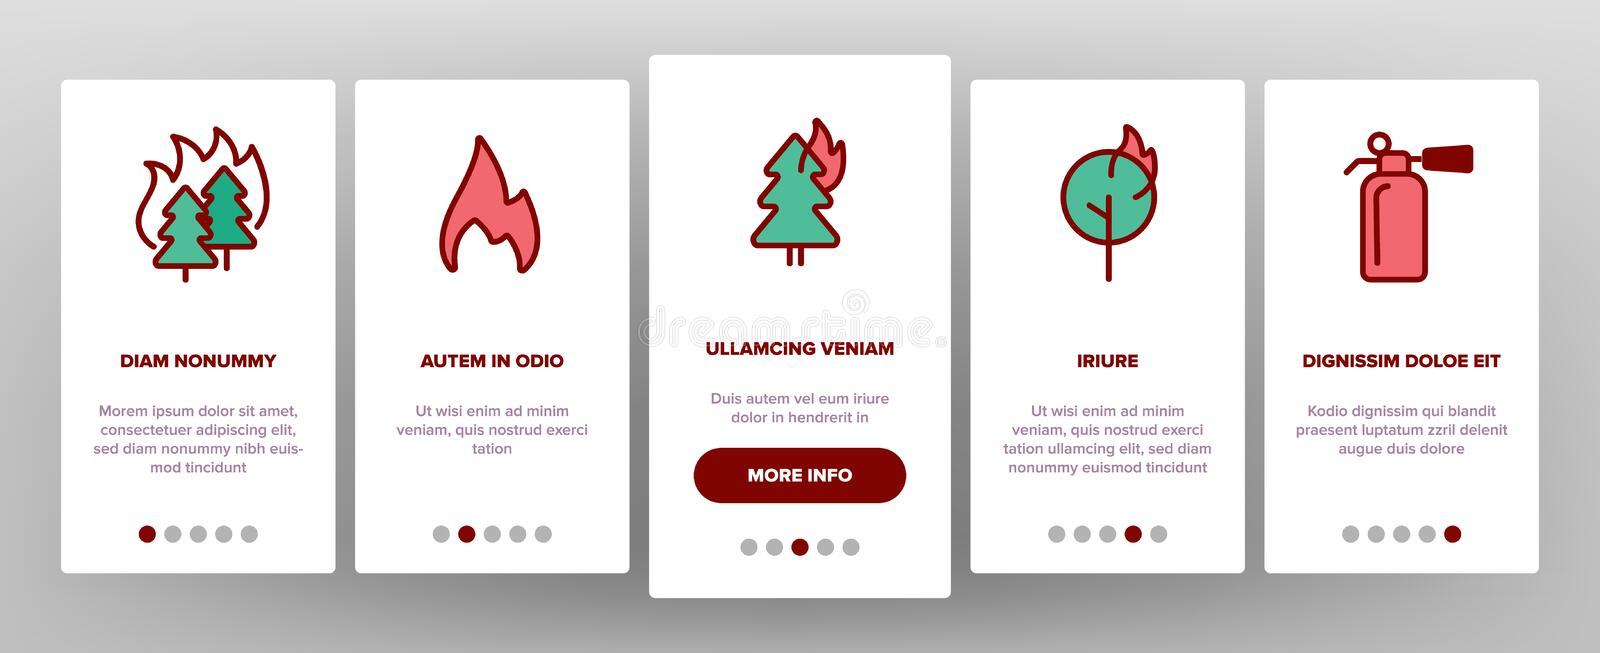 Wildfire, Bushfire Vector Onboarding. Mobile App Page Screen. Wildfire, Natural Disaster Linear Illustrations. Forests, Houses in Flames. Announcing Fire Danger royalty free illustration